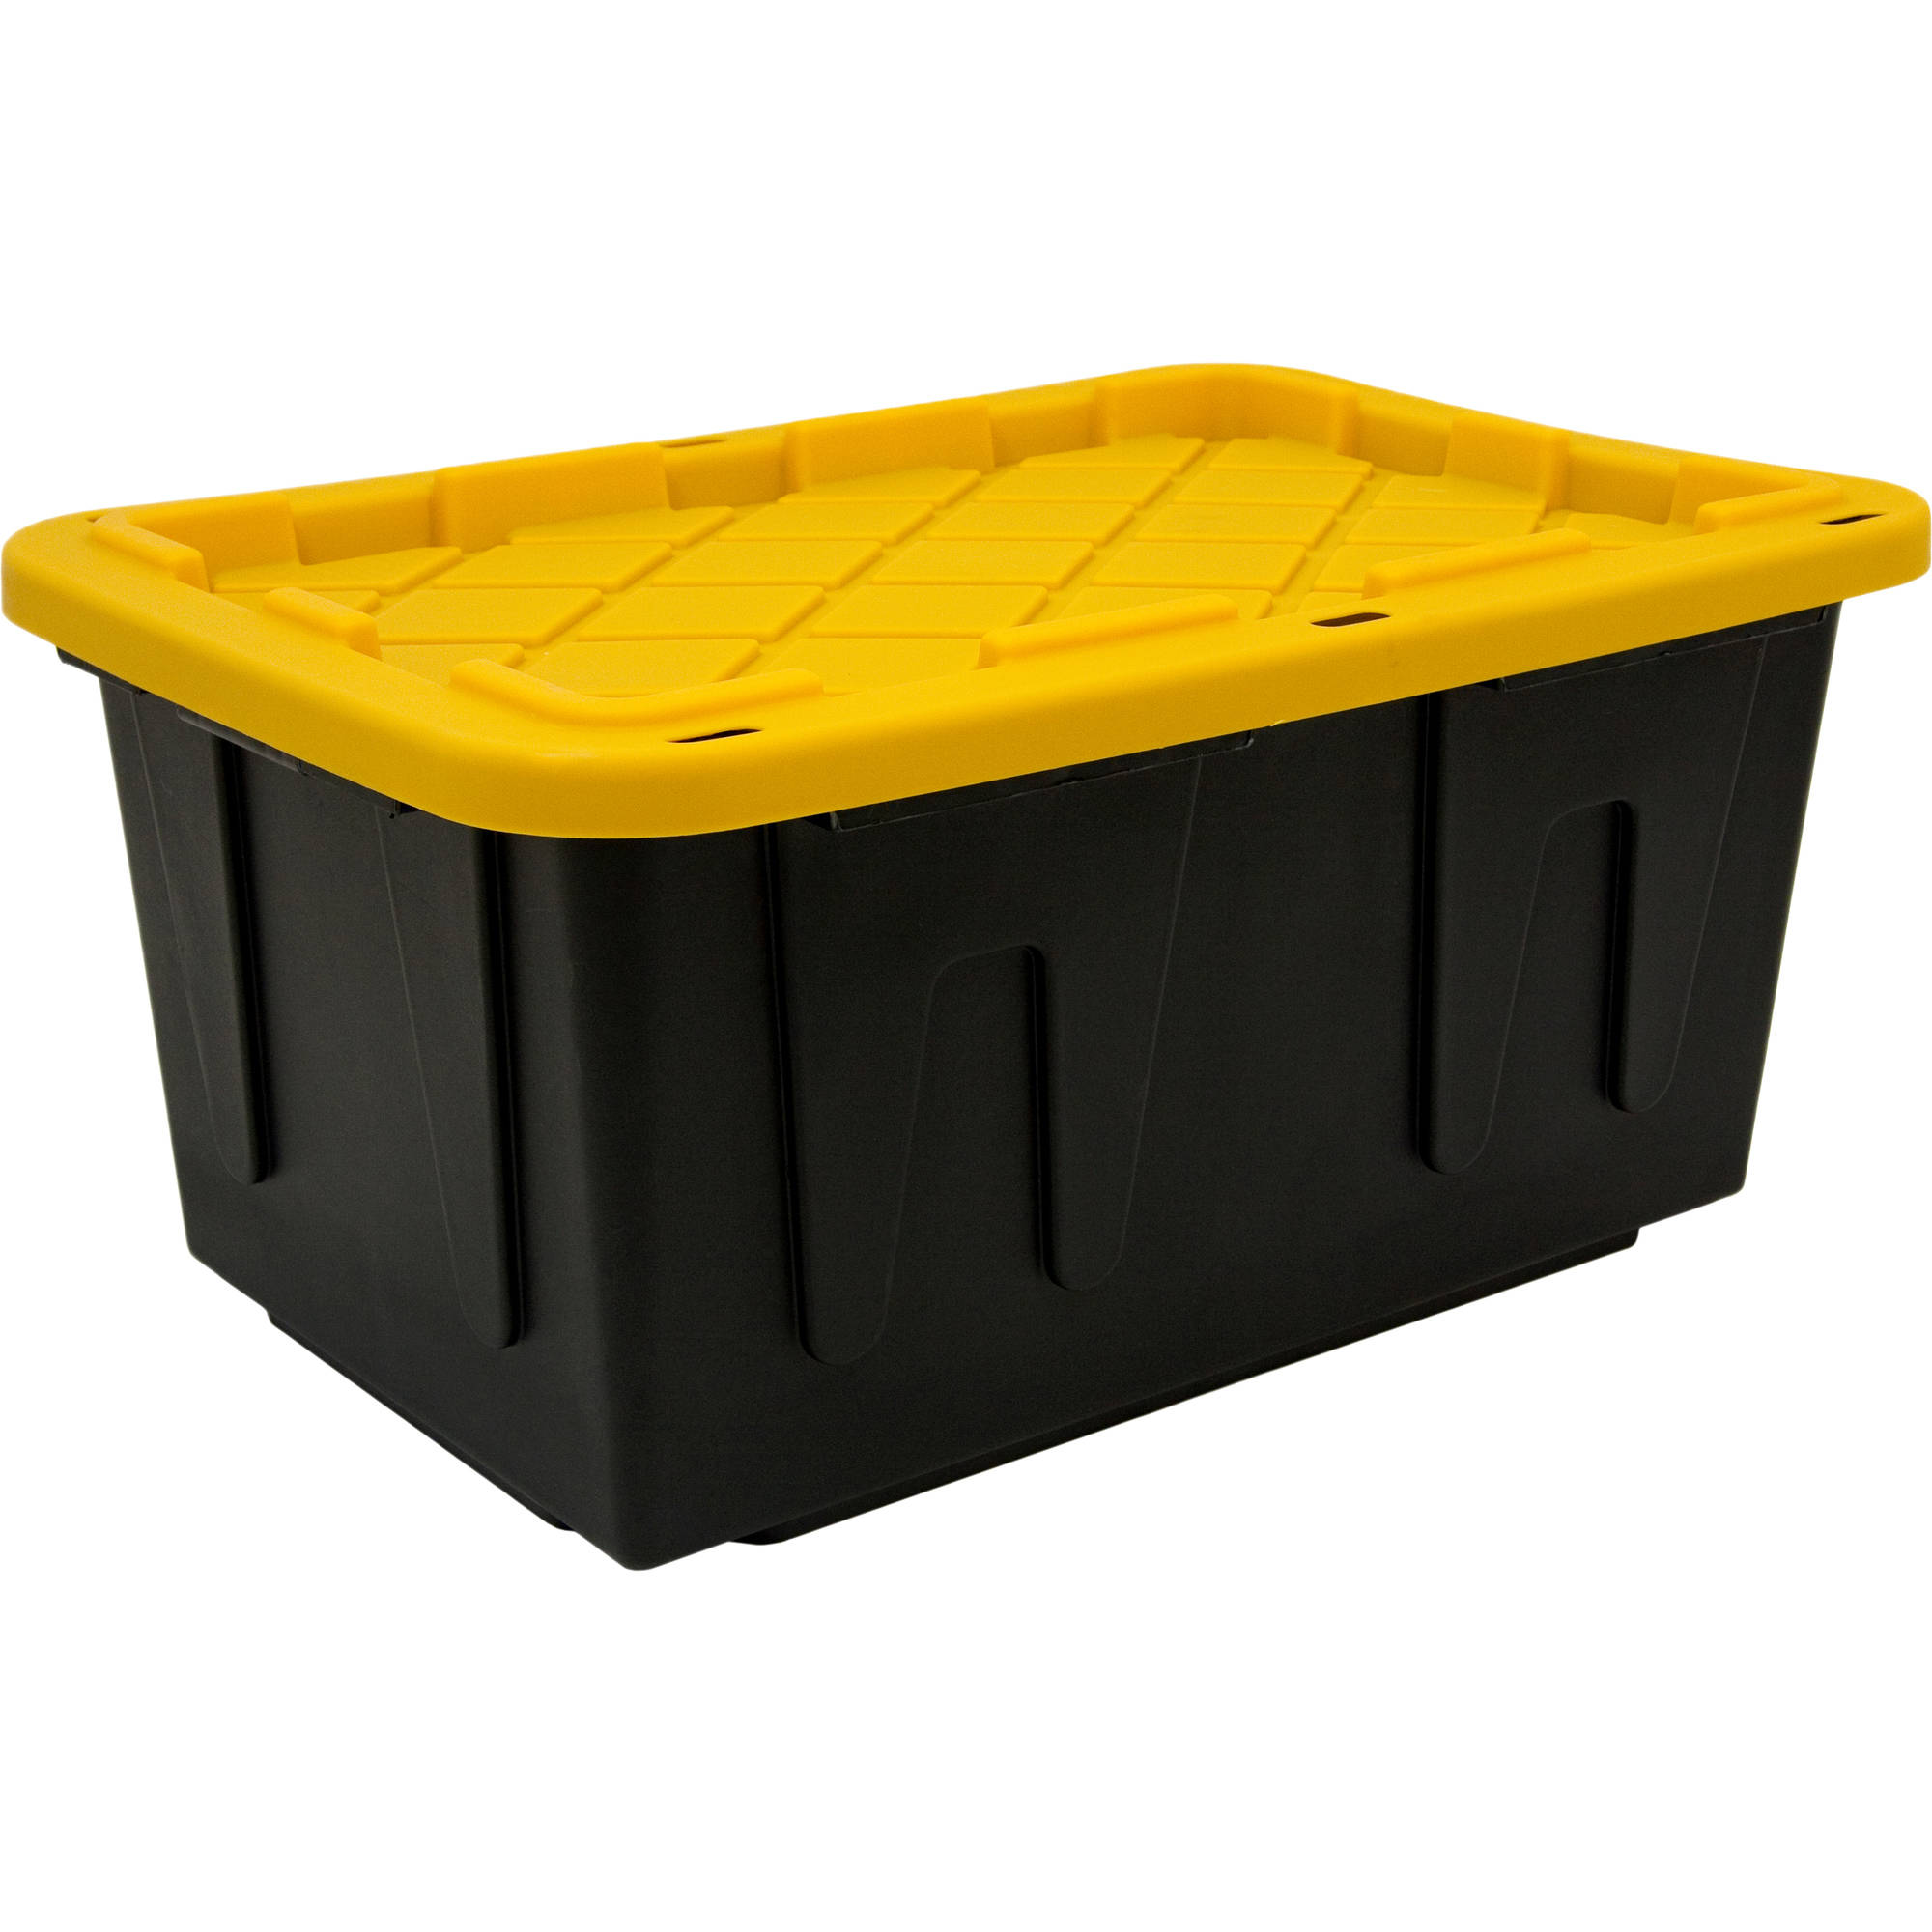 Wonderful 10 Gallon Storage Bins With Lids - d05000e4-10ac-4a35-a630-155af3d4f506_1  Pic_71407.jpeg